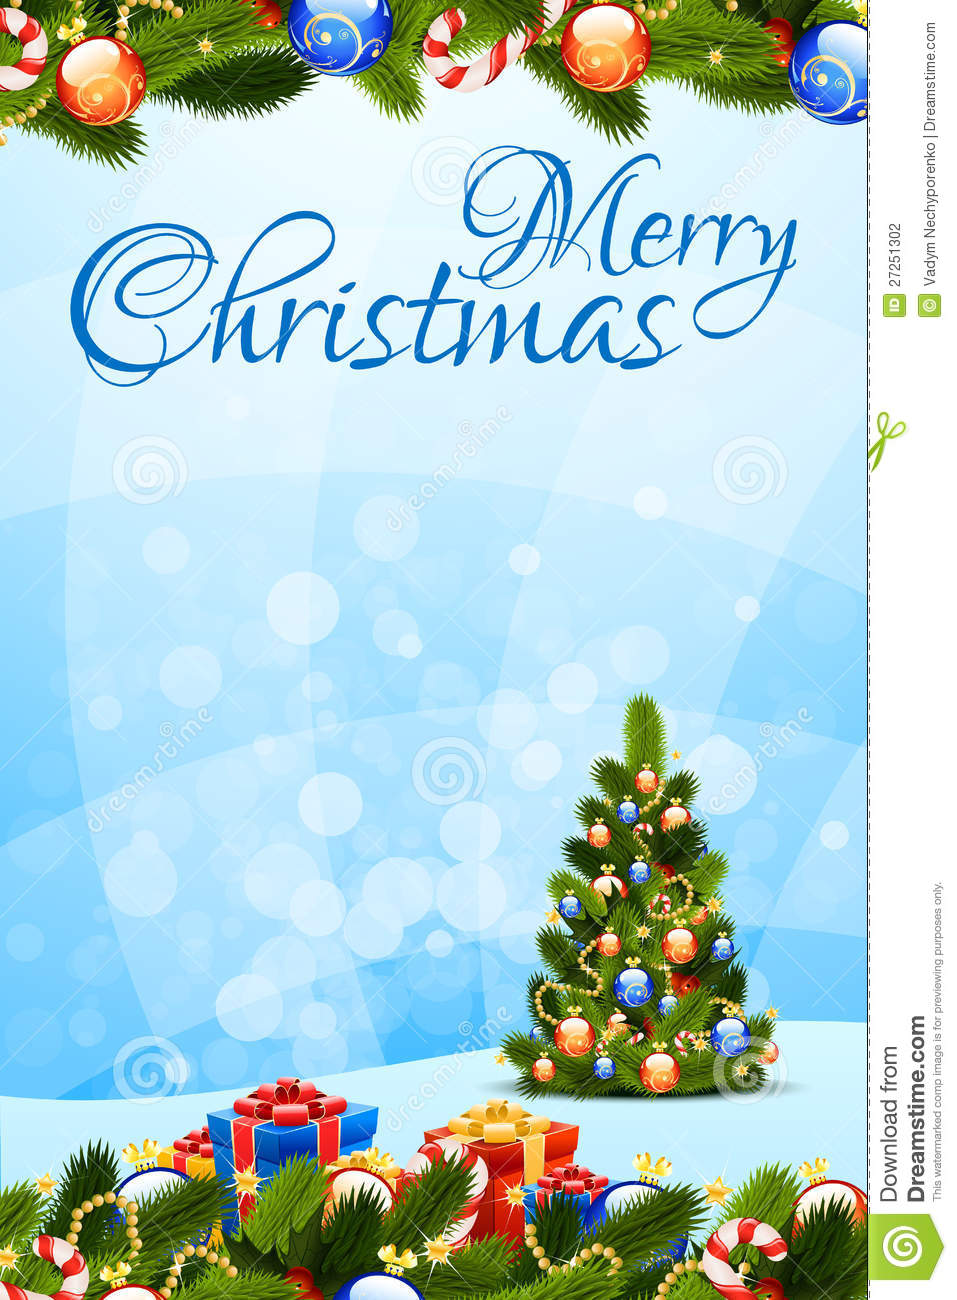 merry christmas greeting card stock vector illustration of